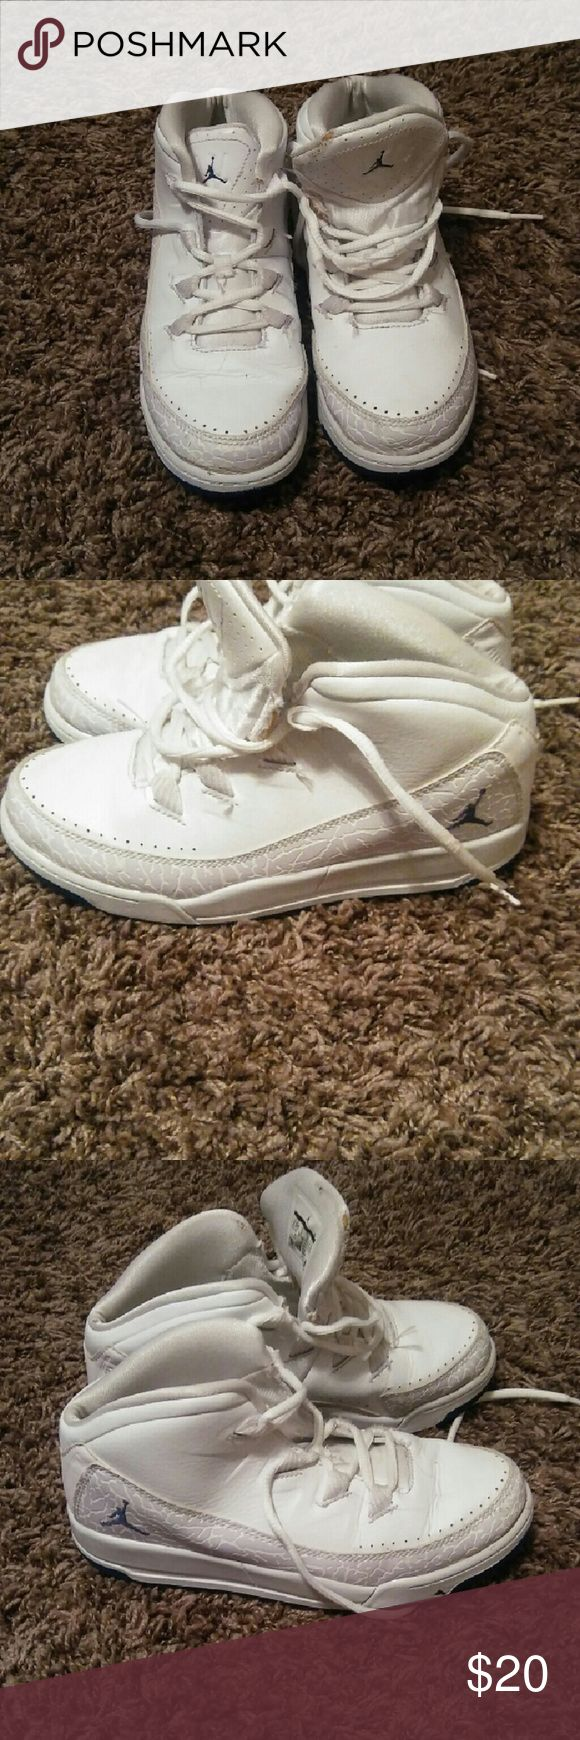 Boy's White Jordan's Size 2.5 Excellent condition Jordan Shoes Sneakers